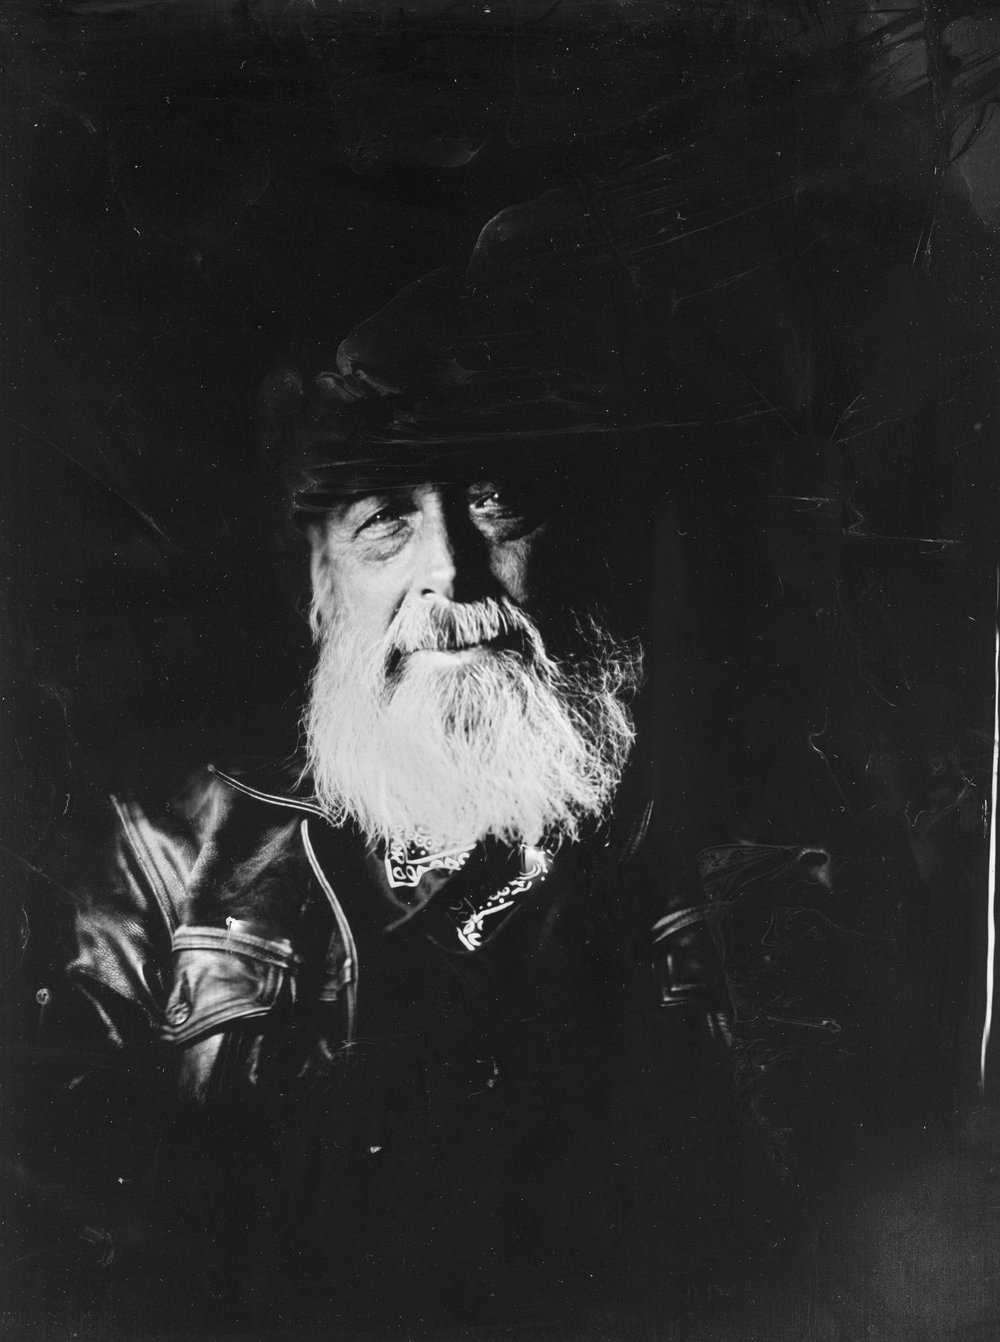 Title : Man with the hat  By:  Raimo Dahl  http://wetplater.com/